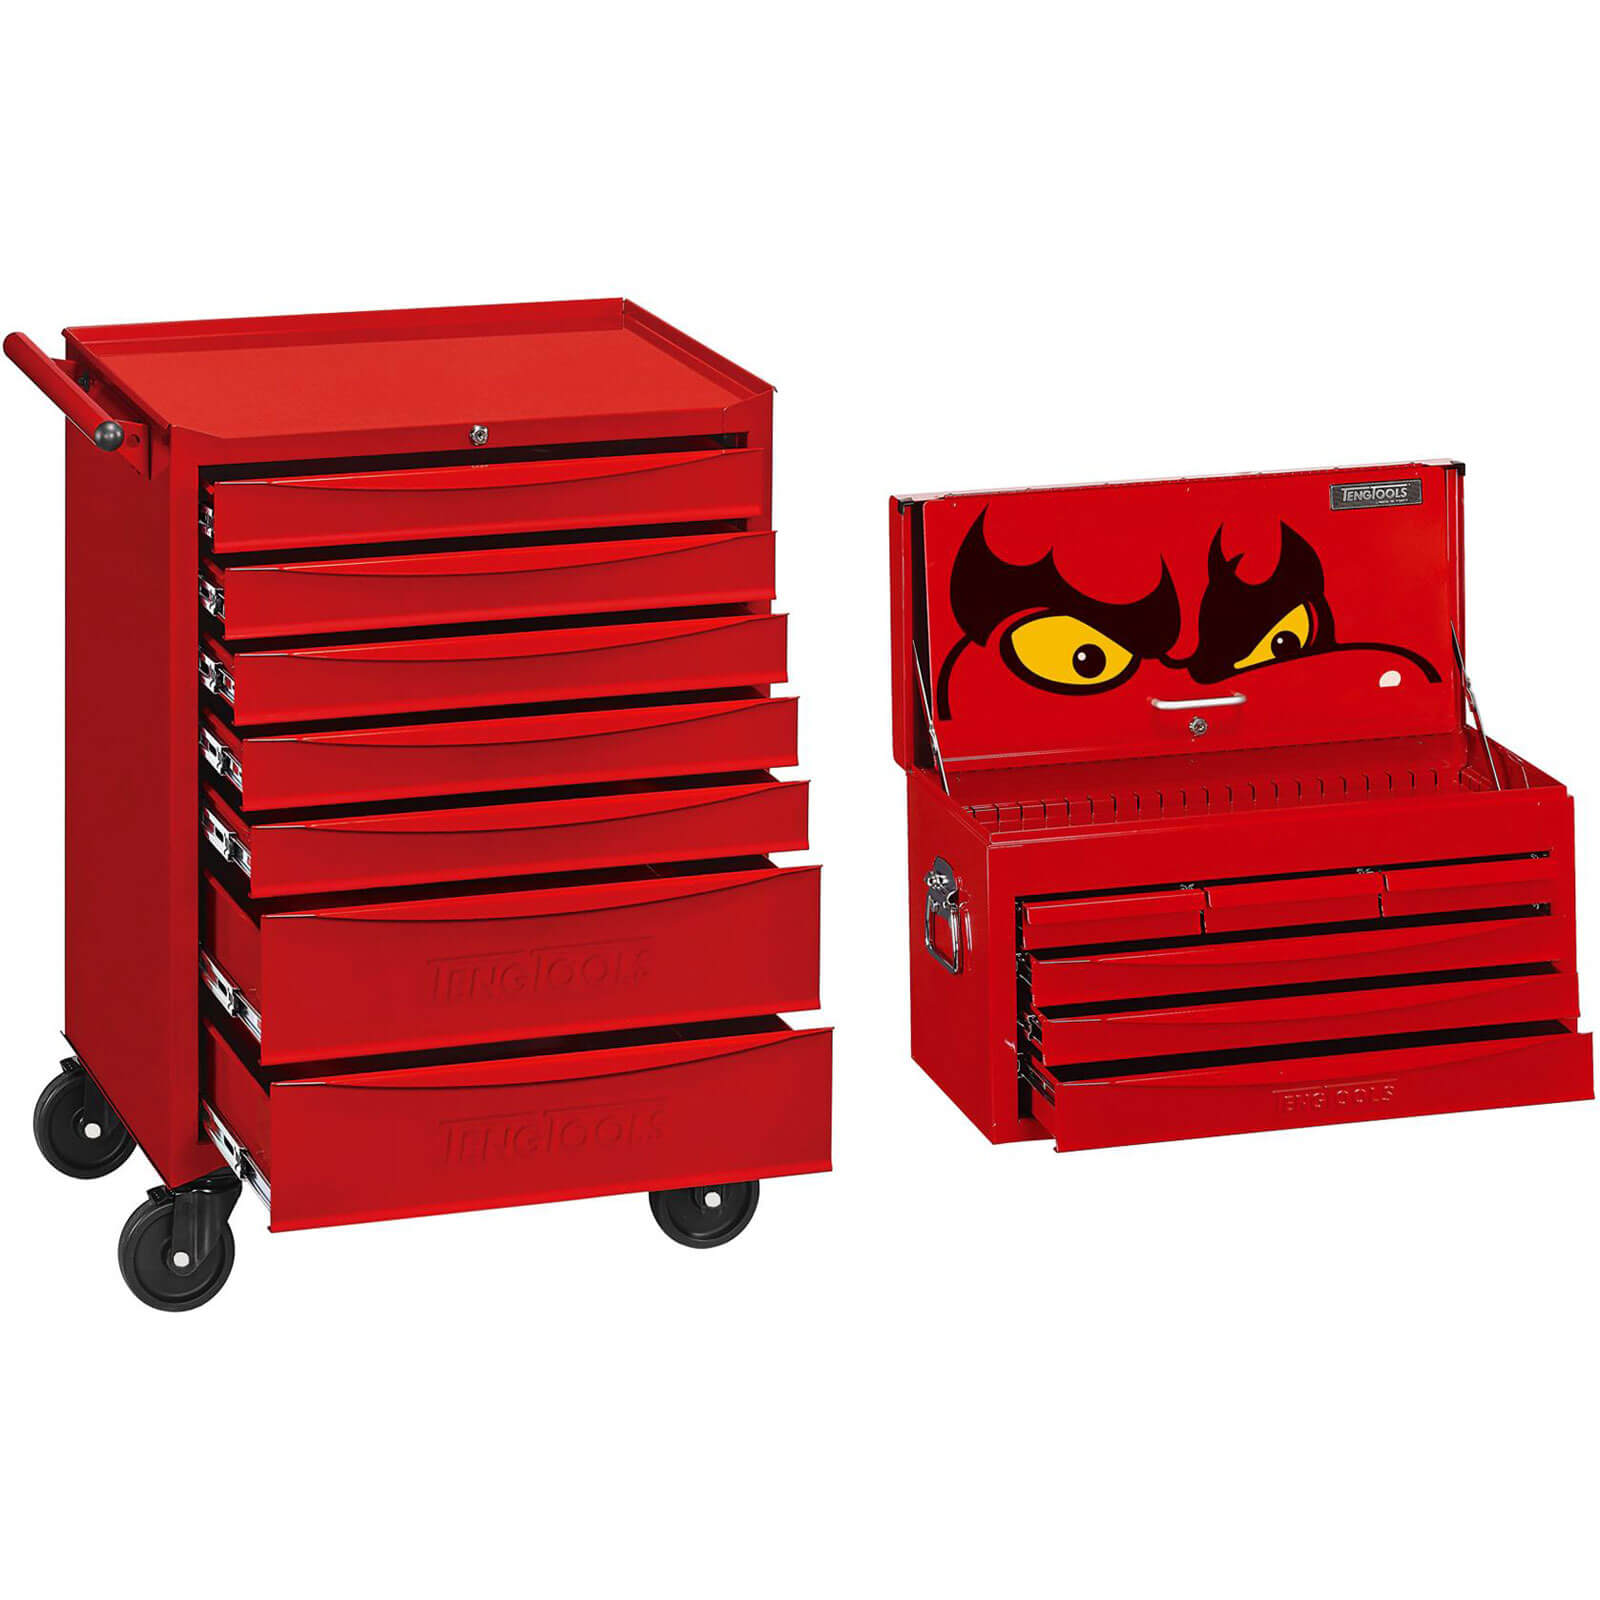 Image of Teng 704 Piece Top Box And Rolling Cabinet Tool Kit